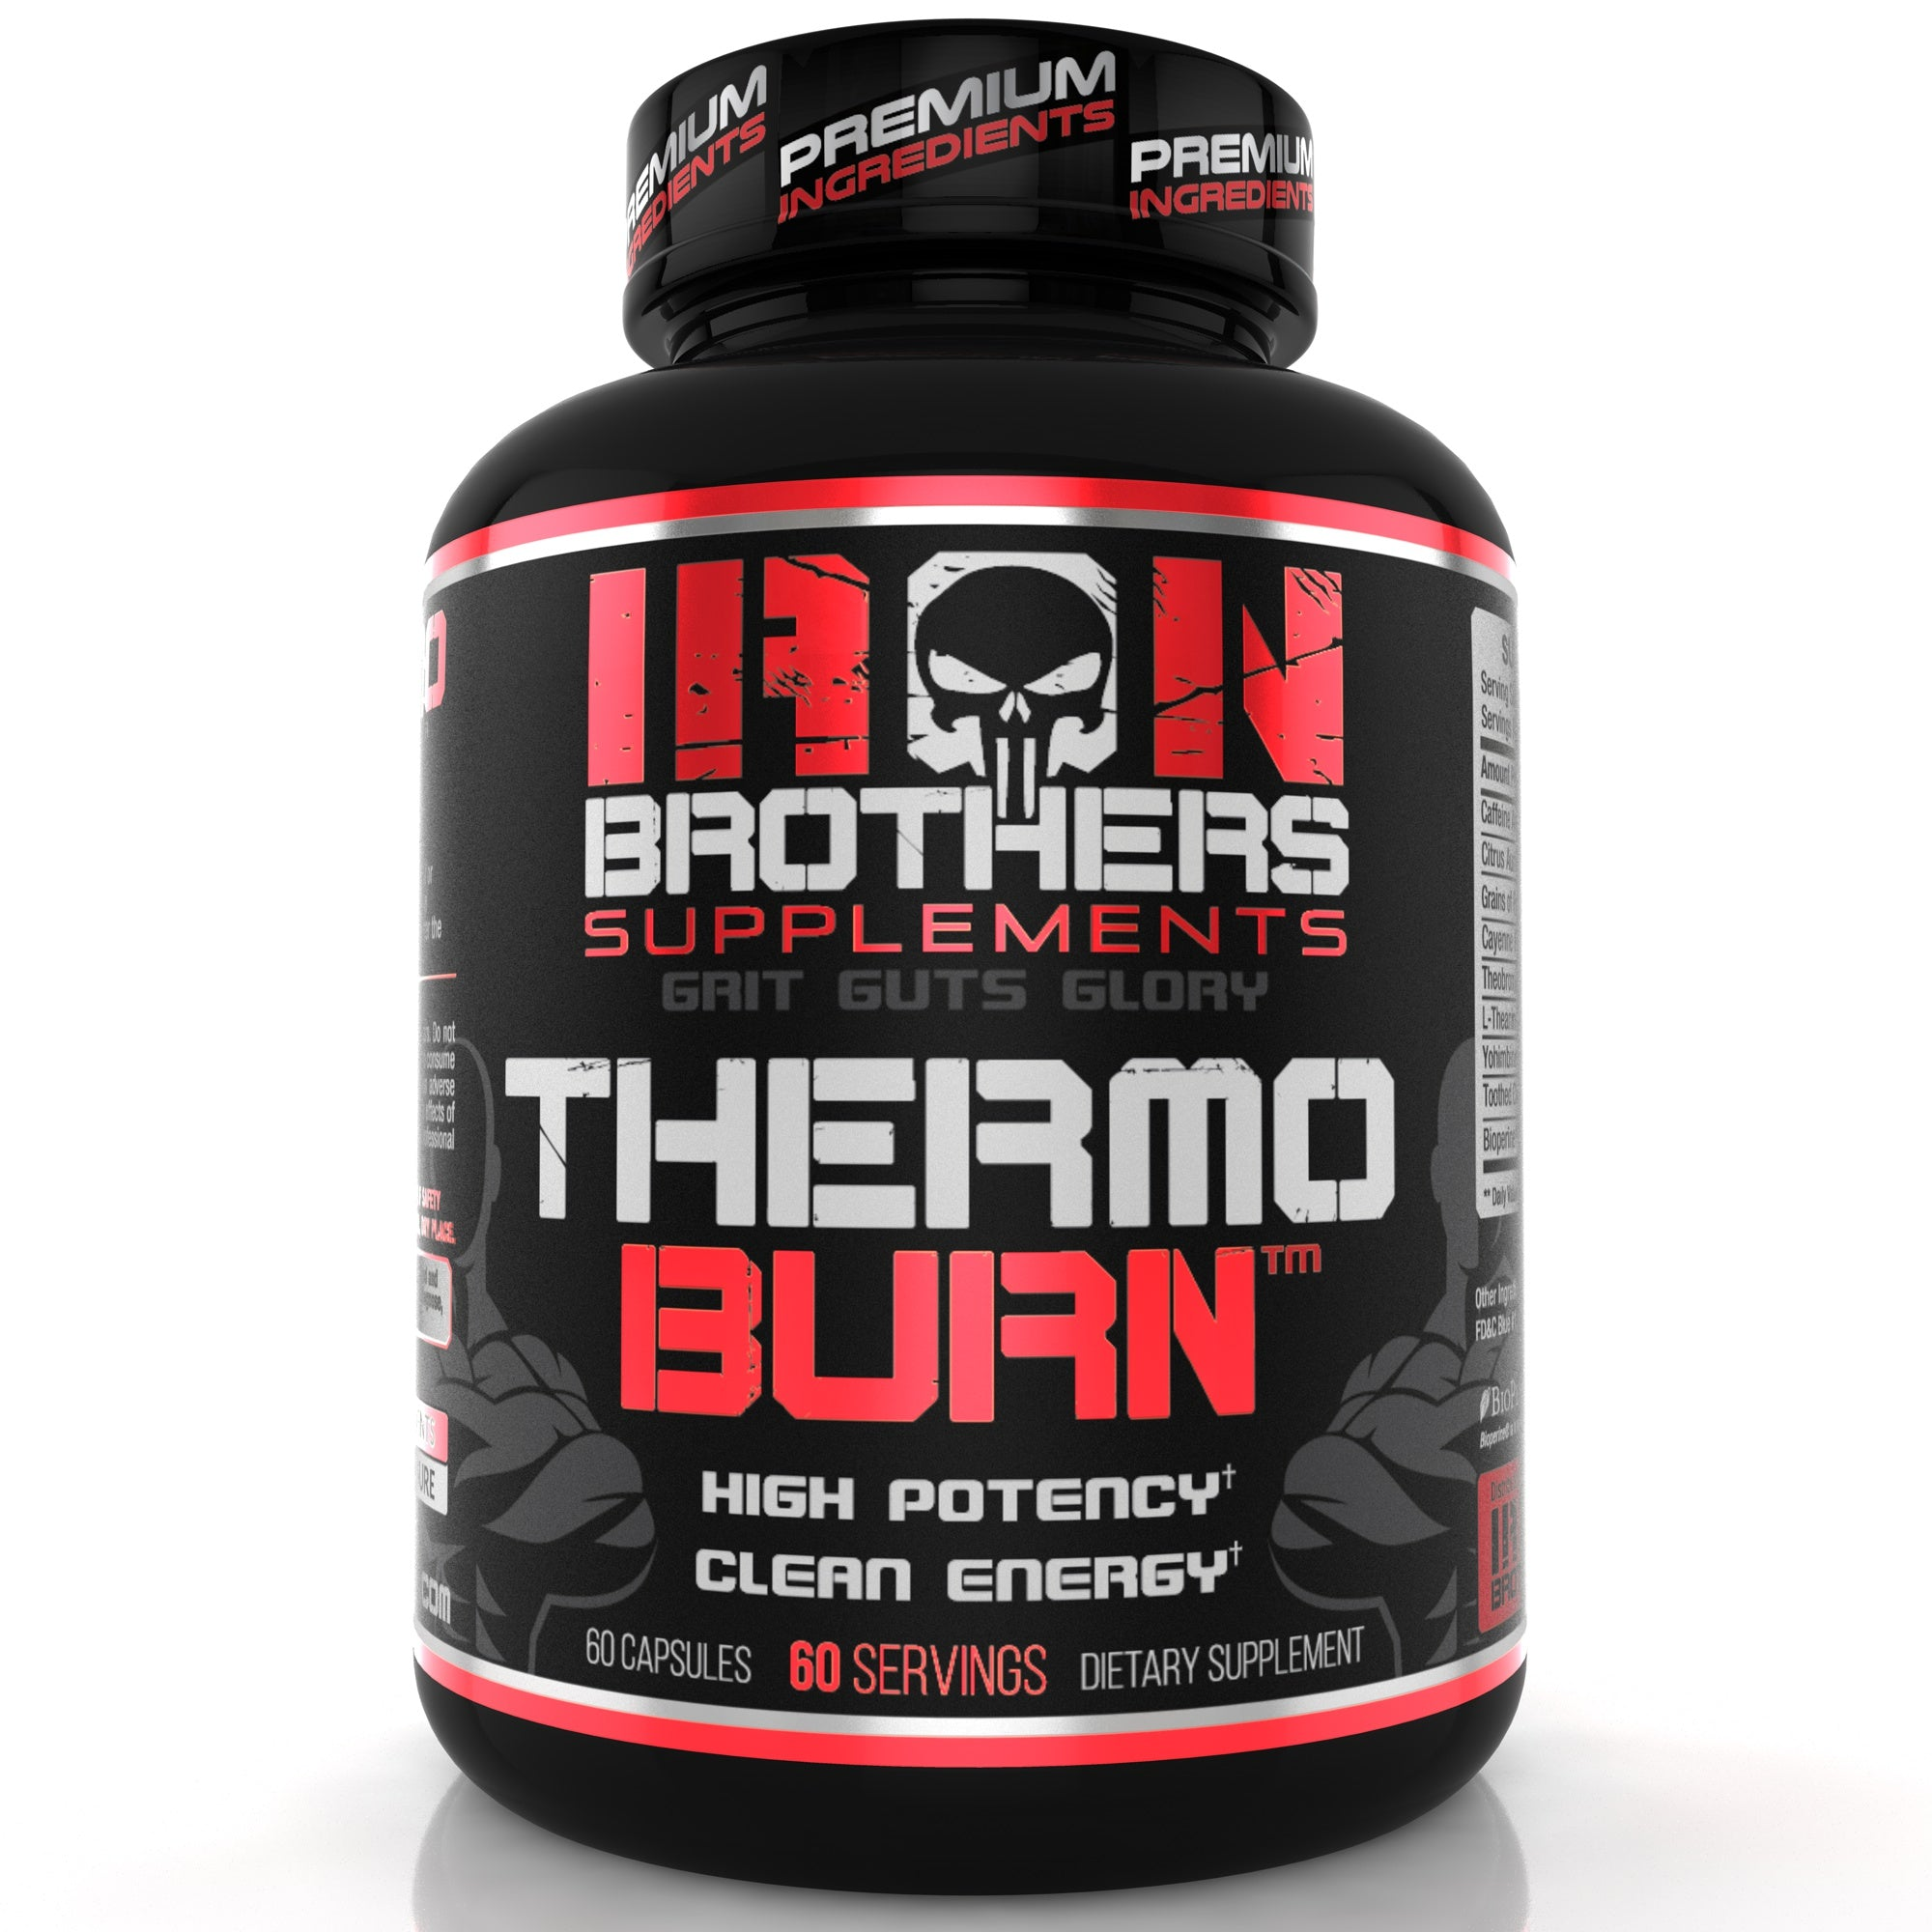 A bottle of Iron Brothers Supplements High Potency ThermoBurn in Black Capsules